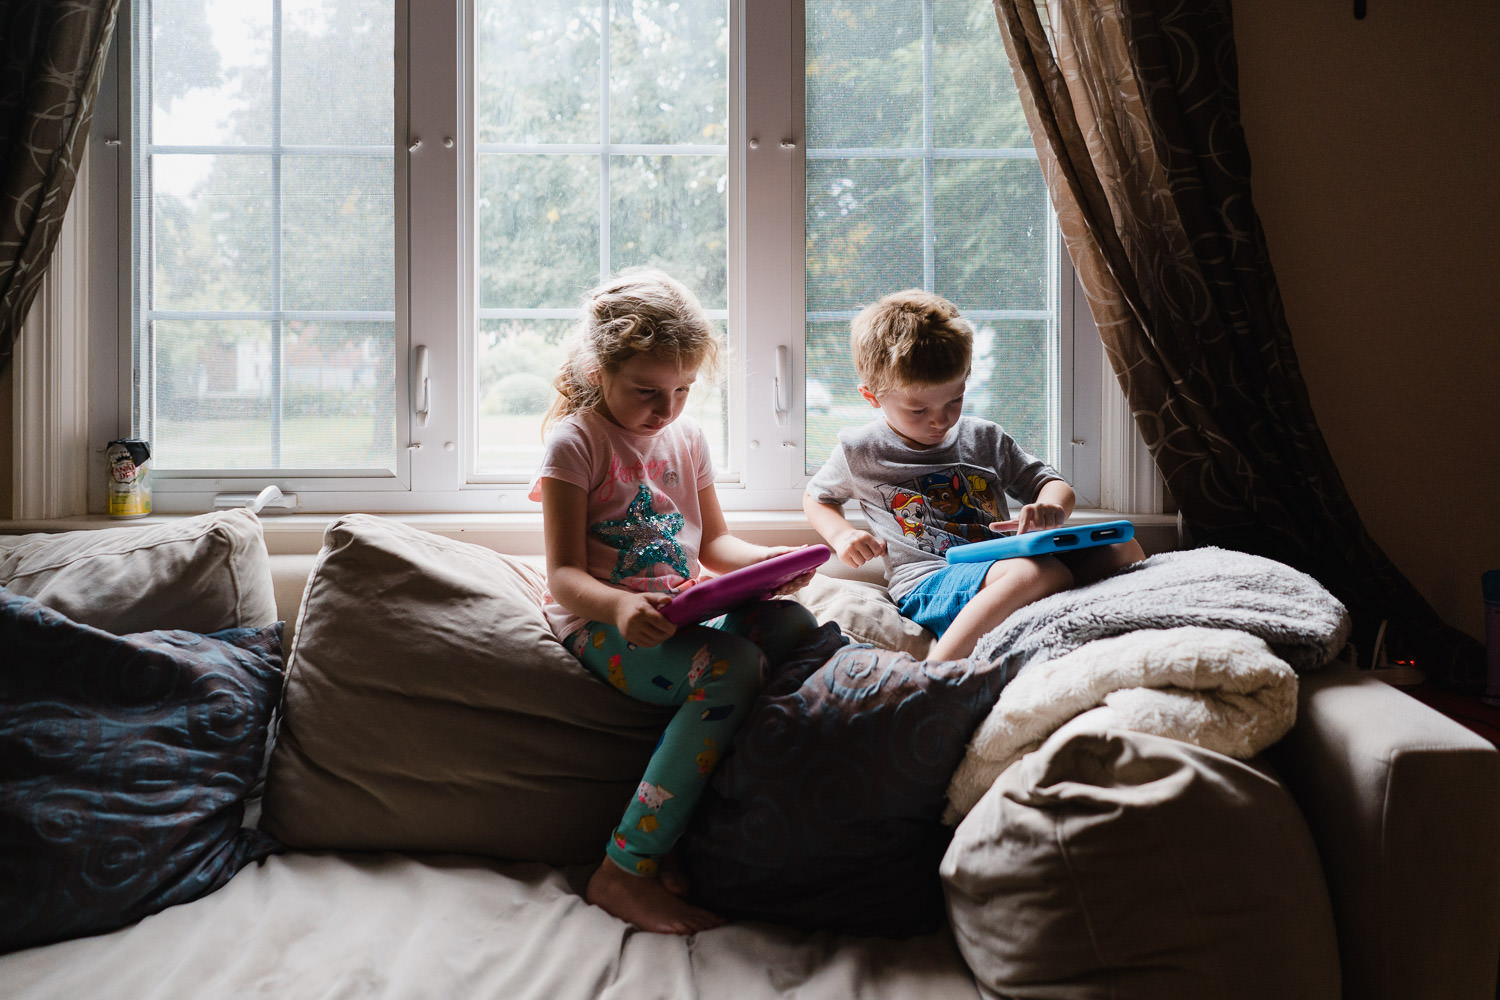 Two children play with tablets on a couch.